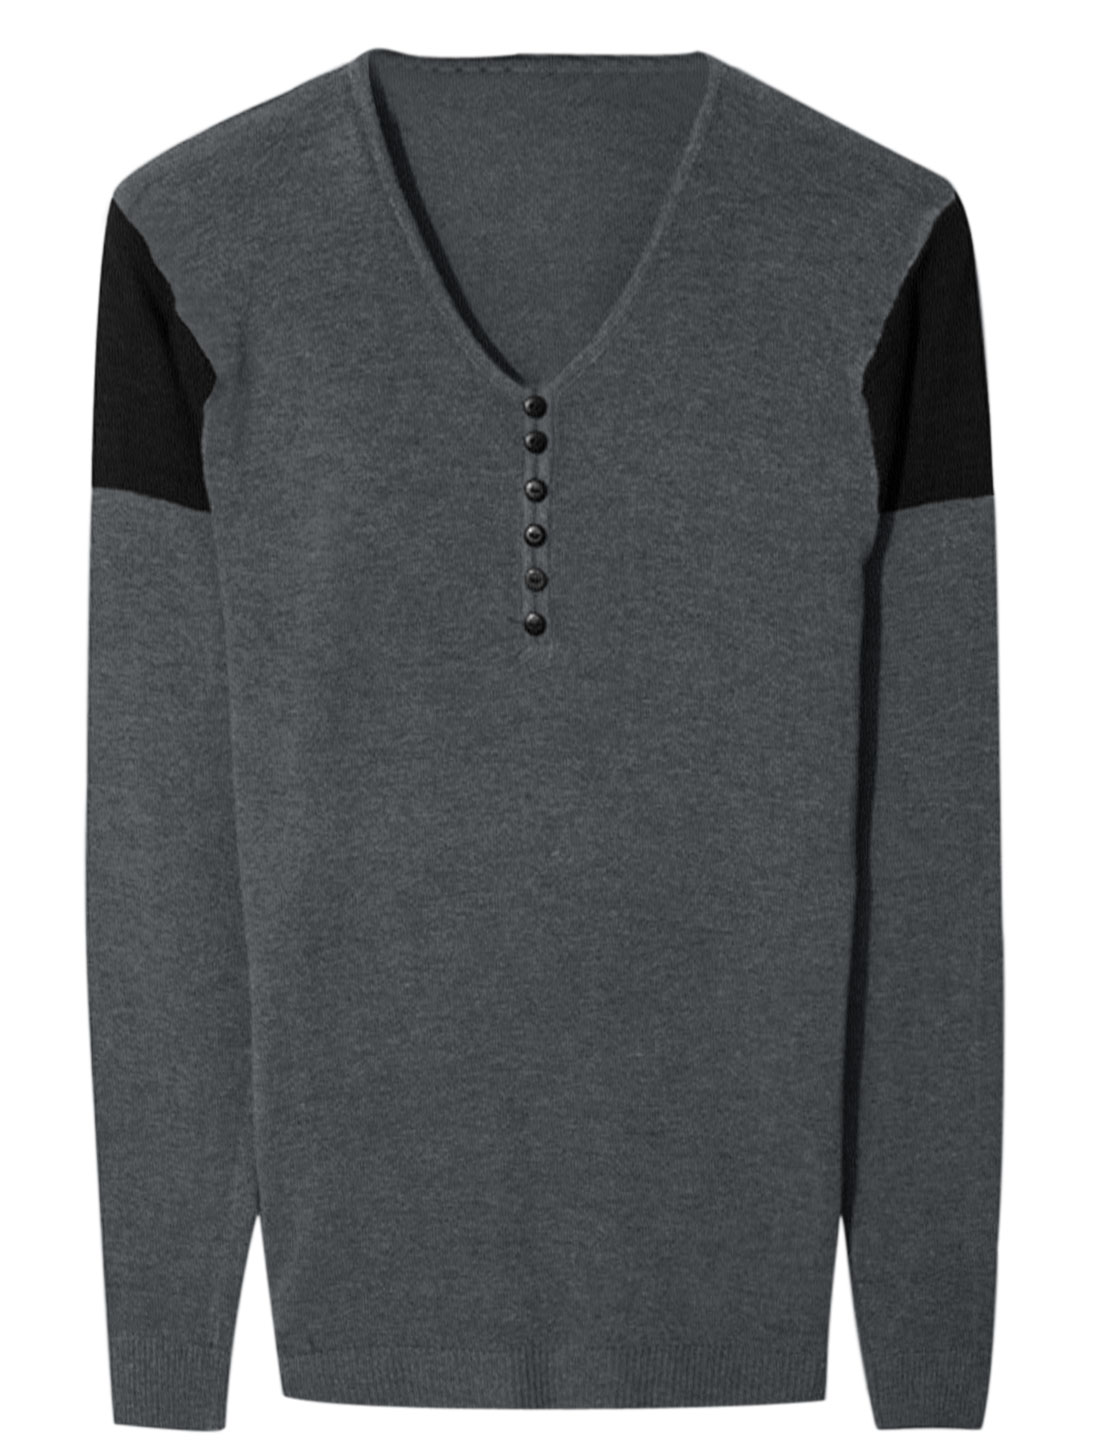 Men V Neck Long Sleeve Buttons Decor Contrast Color Knit Shirt Dark Gray S